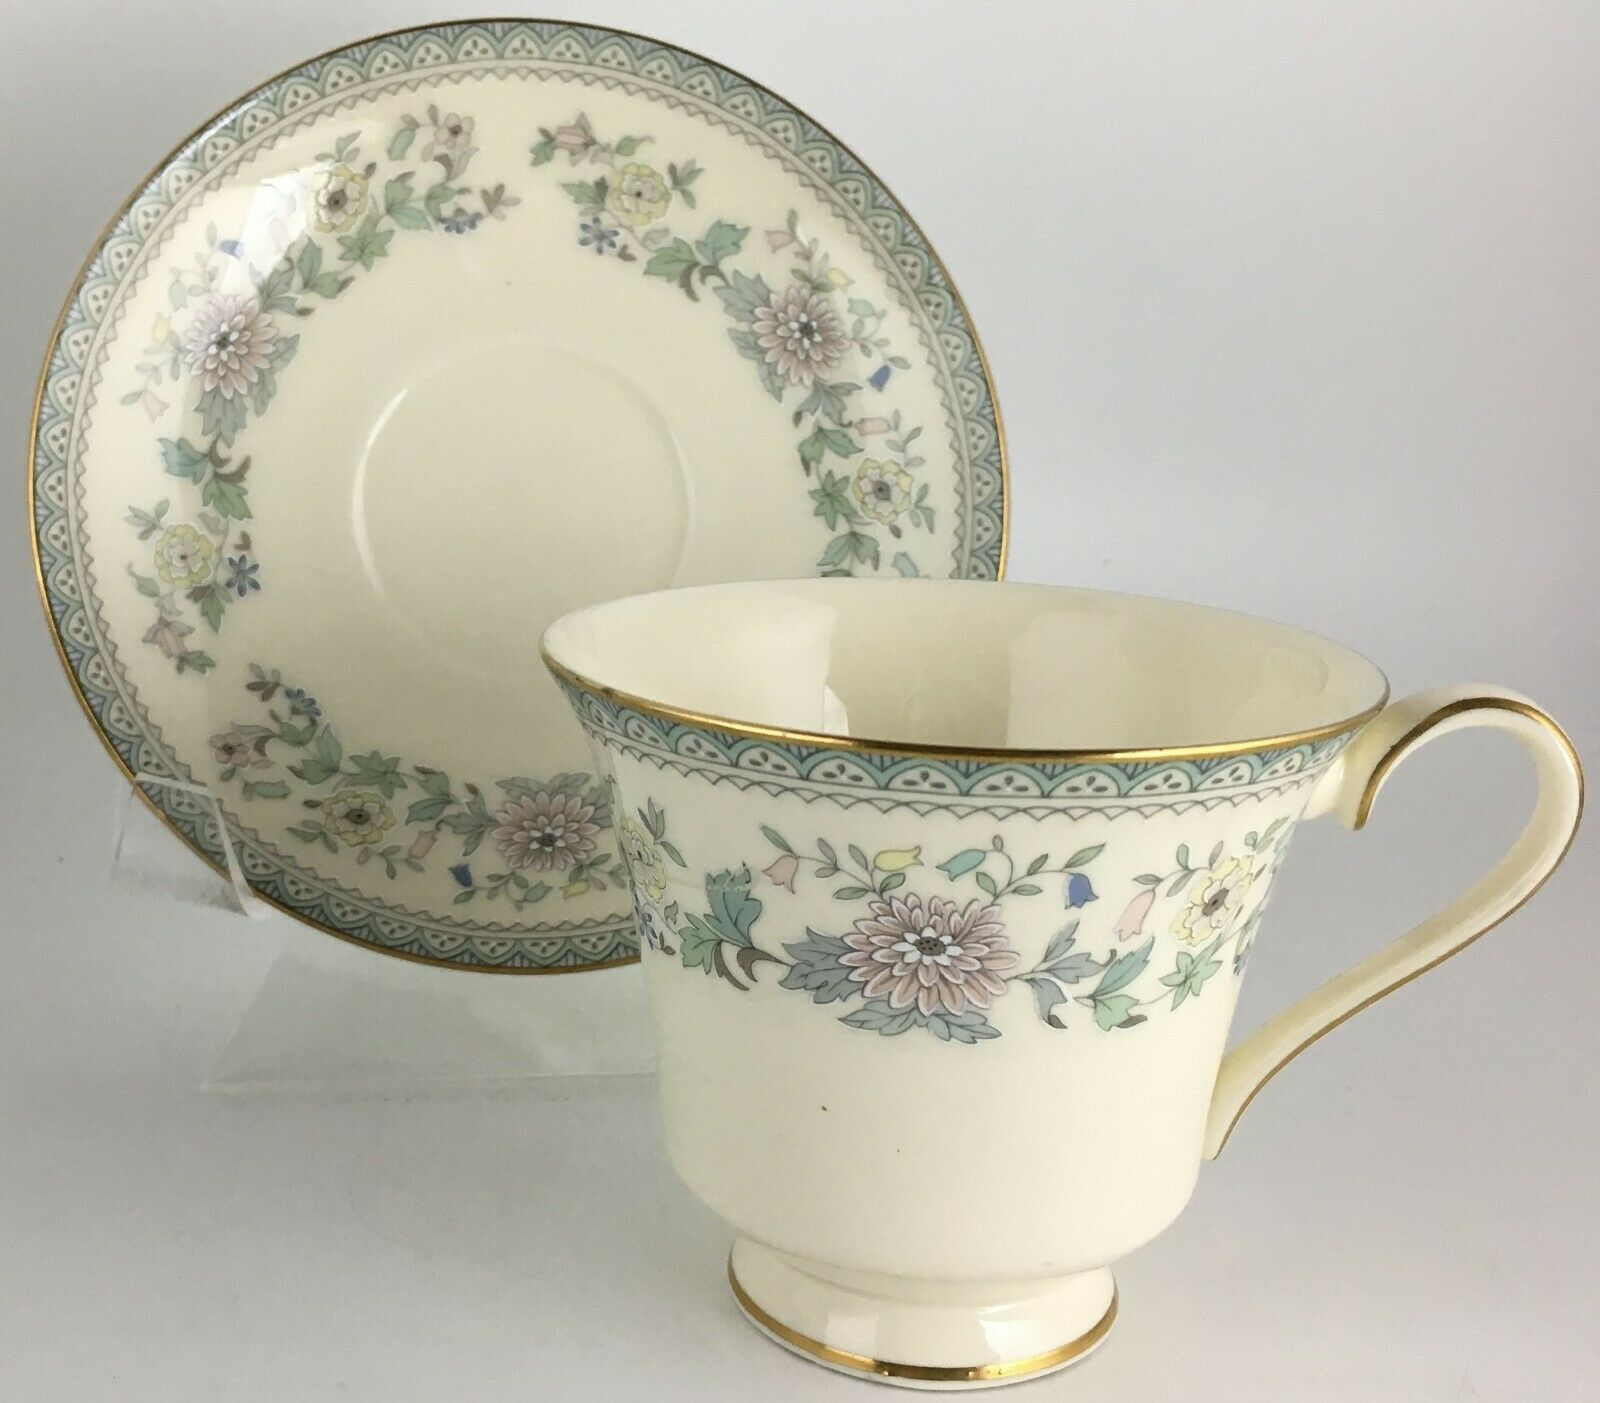 Primary image for Minton Bordeaux Cup & saucer